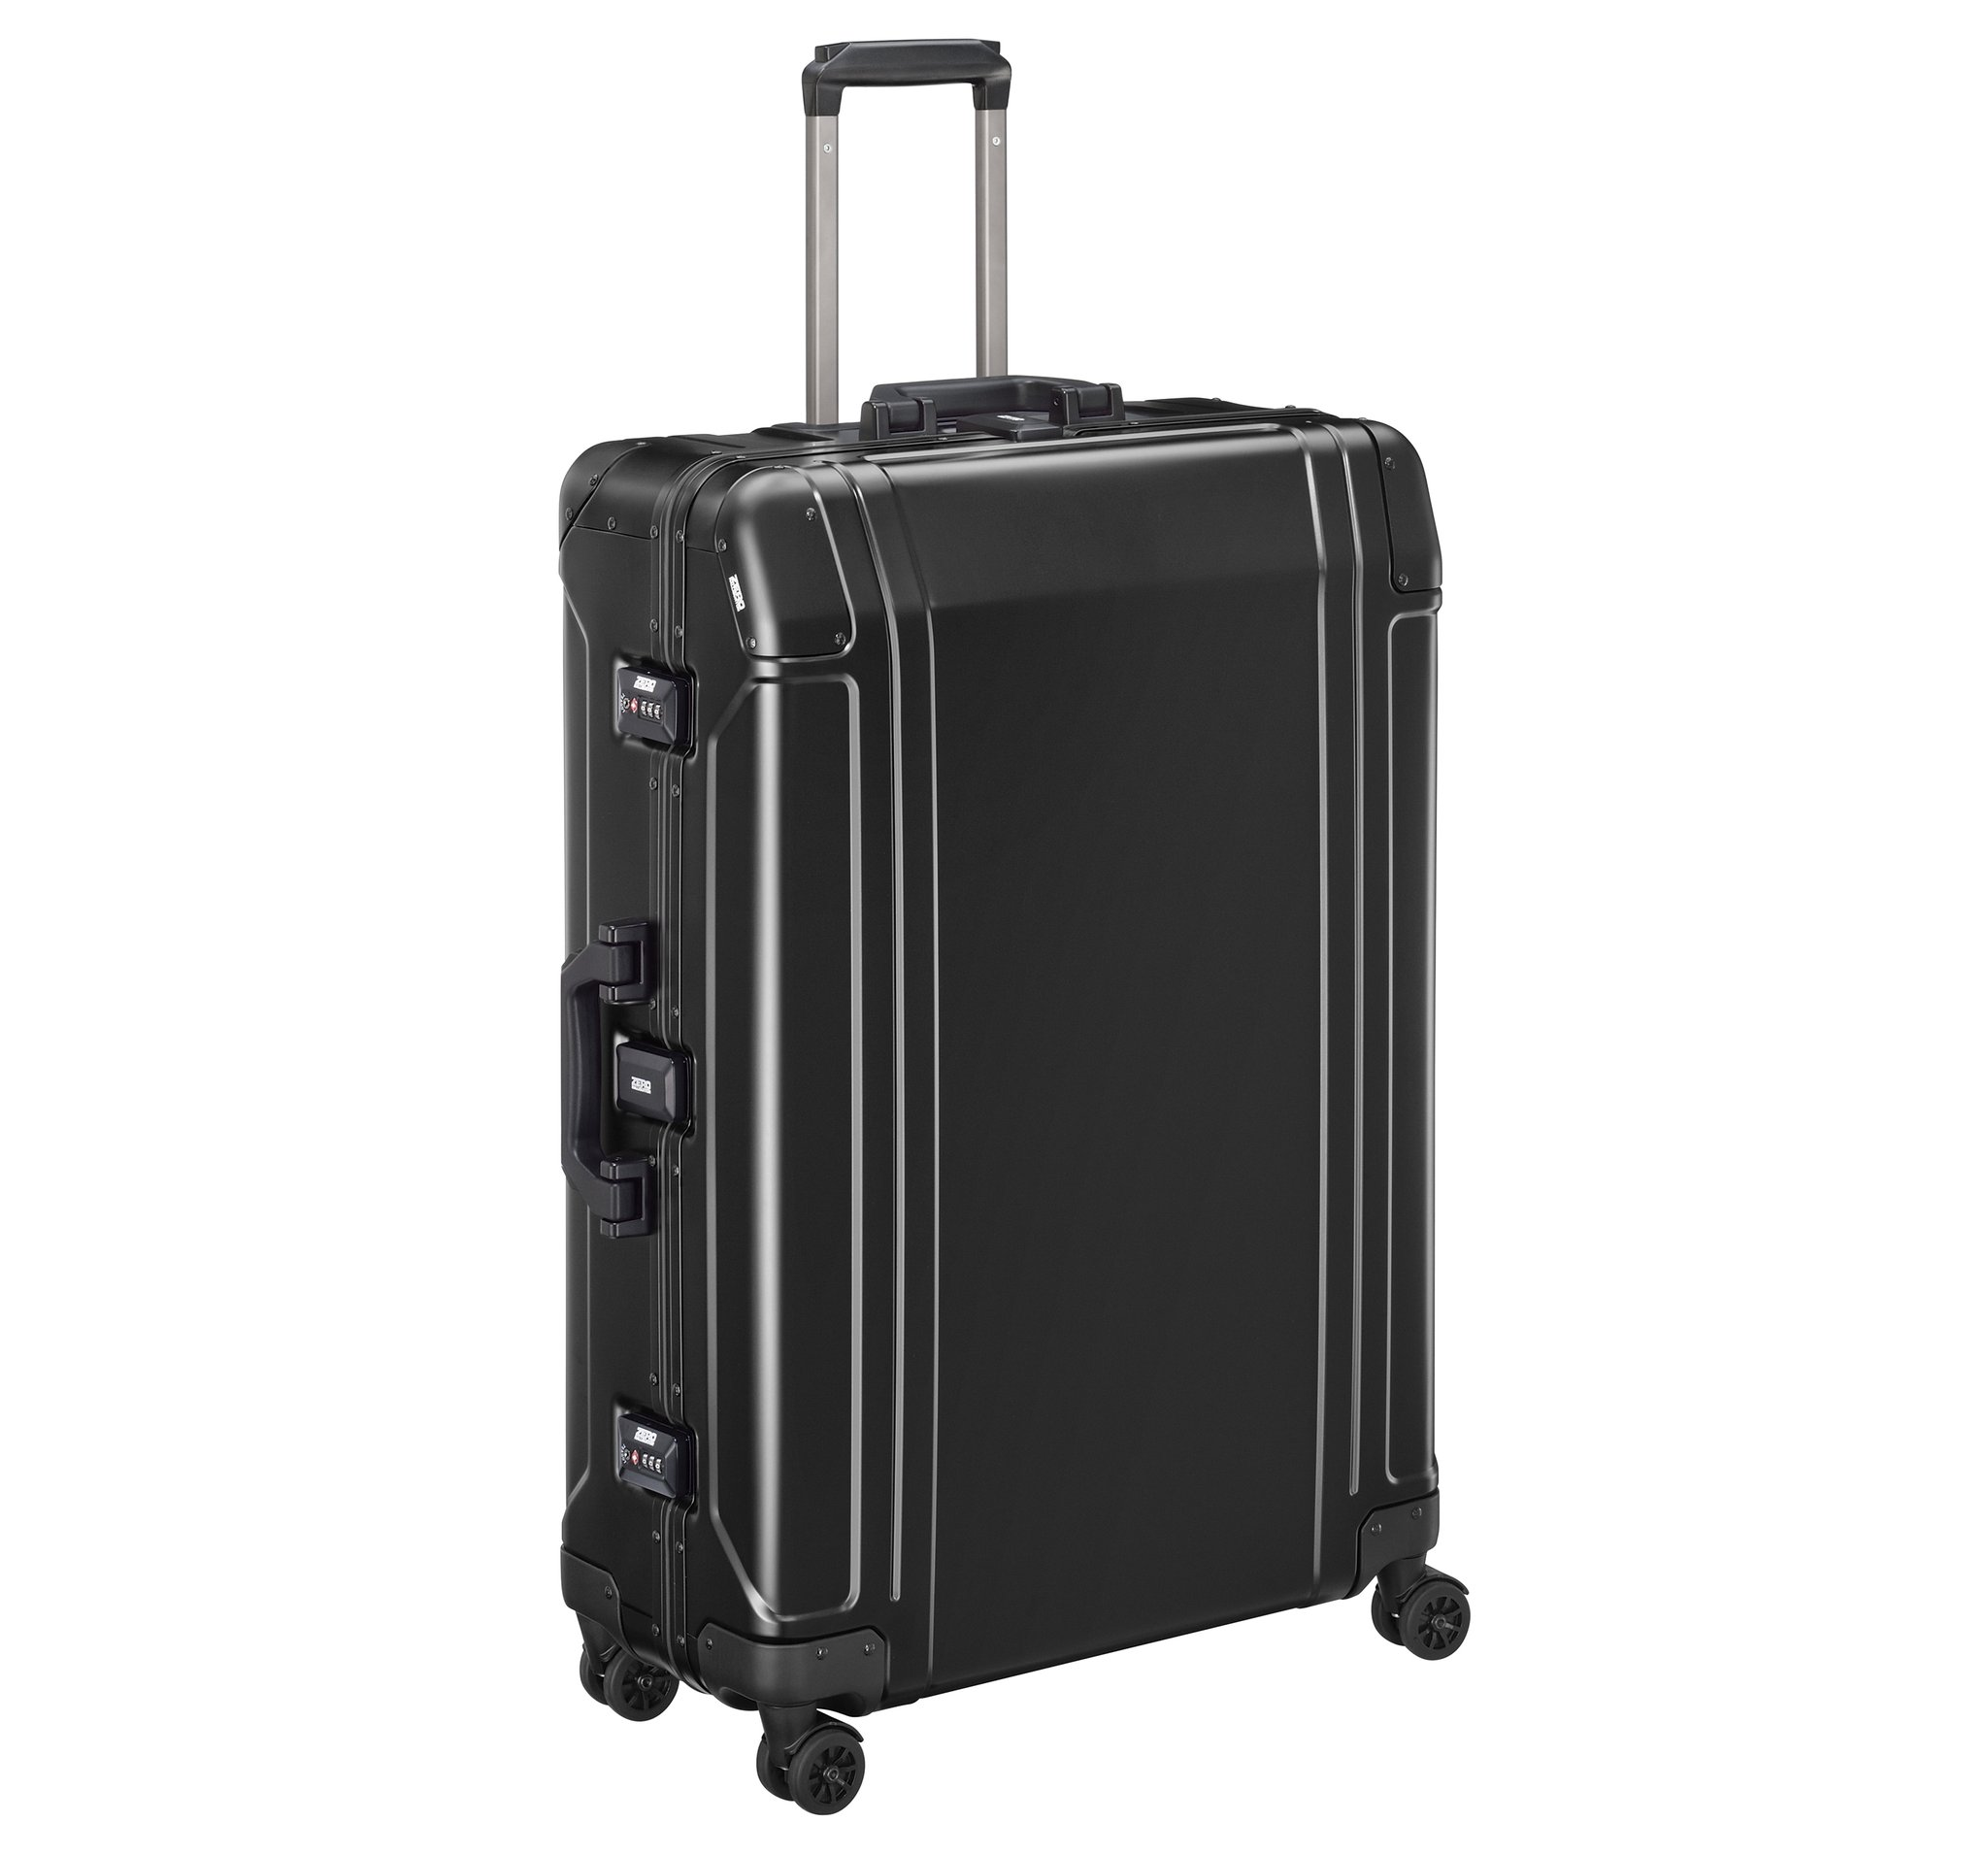 "Geo Aluminum 3.0 - 30"" 4-Wheel Spinner Travel Case by Zero Halliburton (Color: Black)"